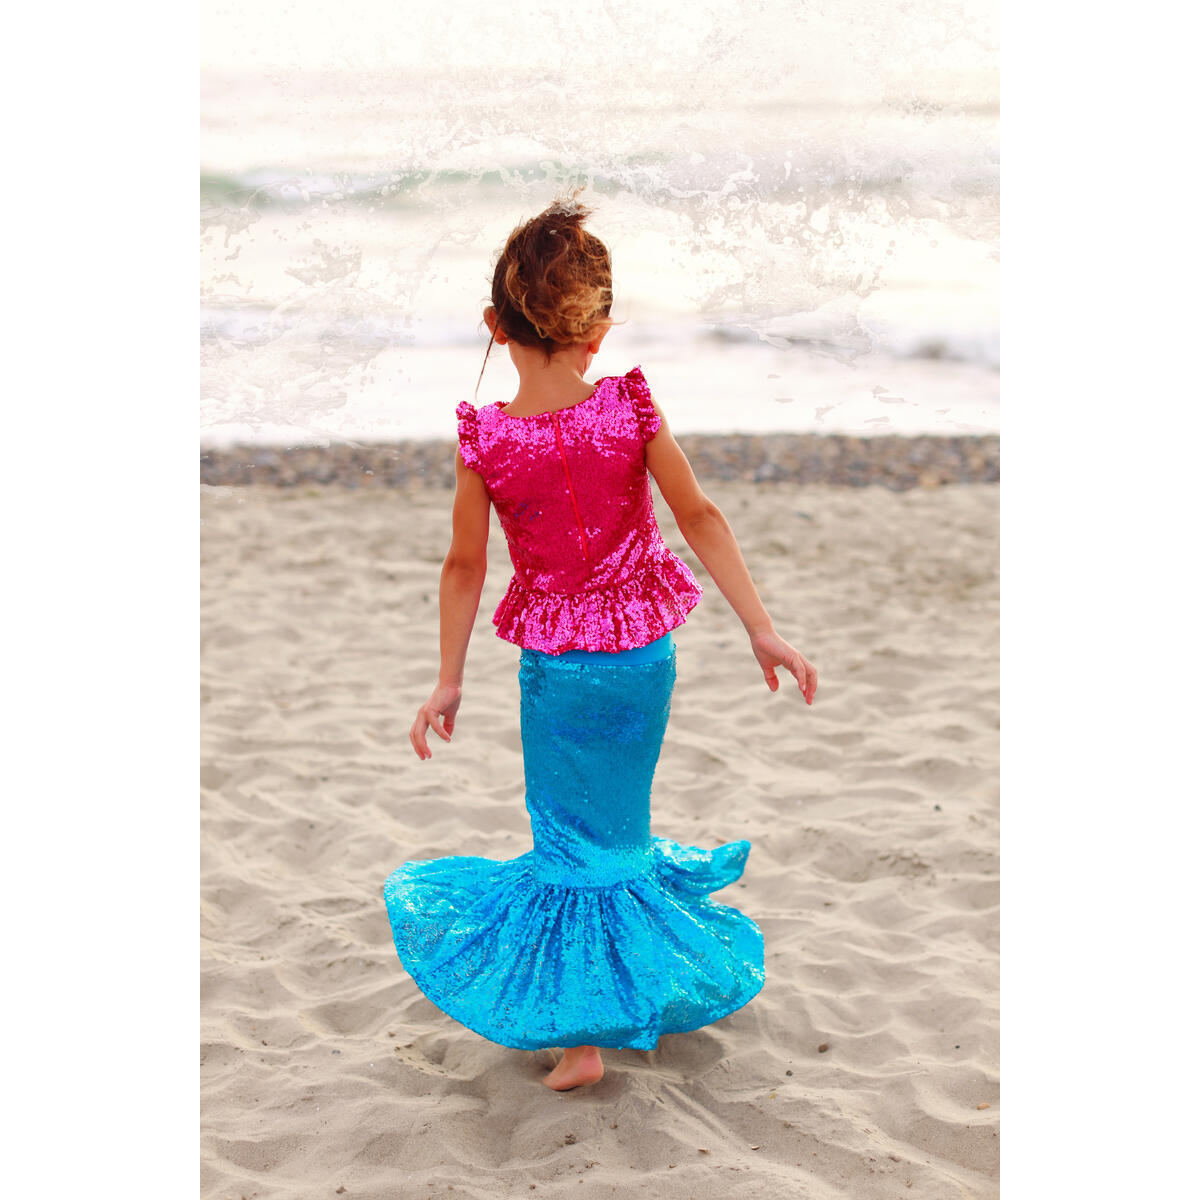 Toddler Girl's Mermaid Costume for Birthday Party, Dress up Play and Halloween - Hot Pink Top W/ Deep Blue Skirt L (5-6 Years)